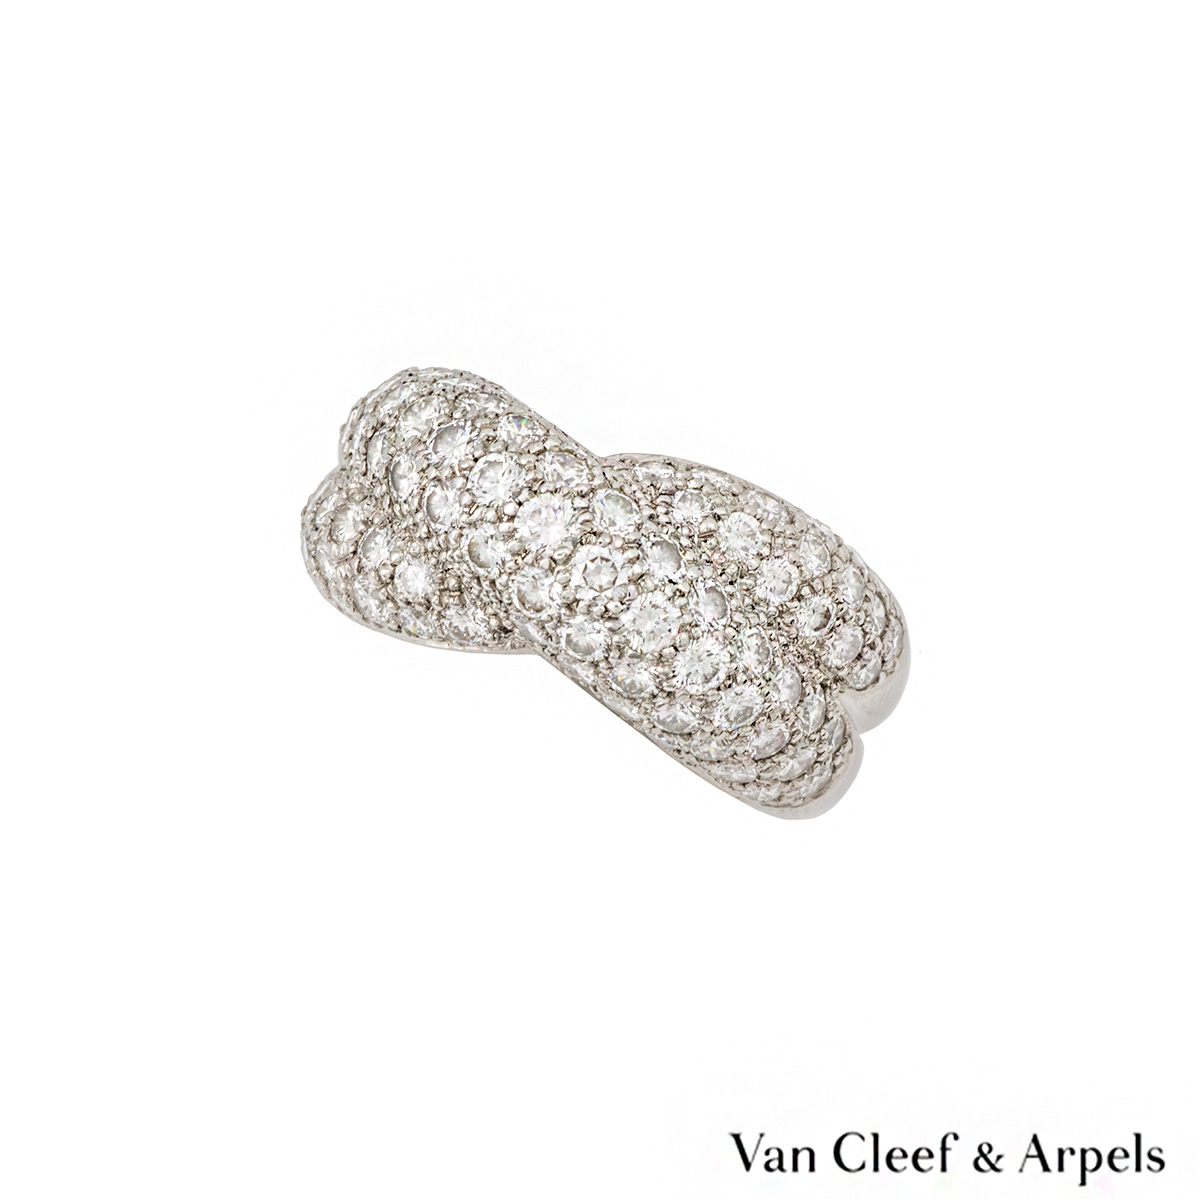 Van Cleef & Arpels 18k White Gold Diamond Set Dress Ring